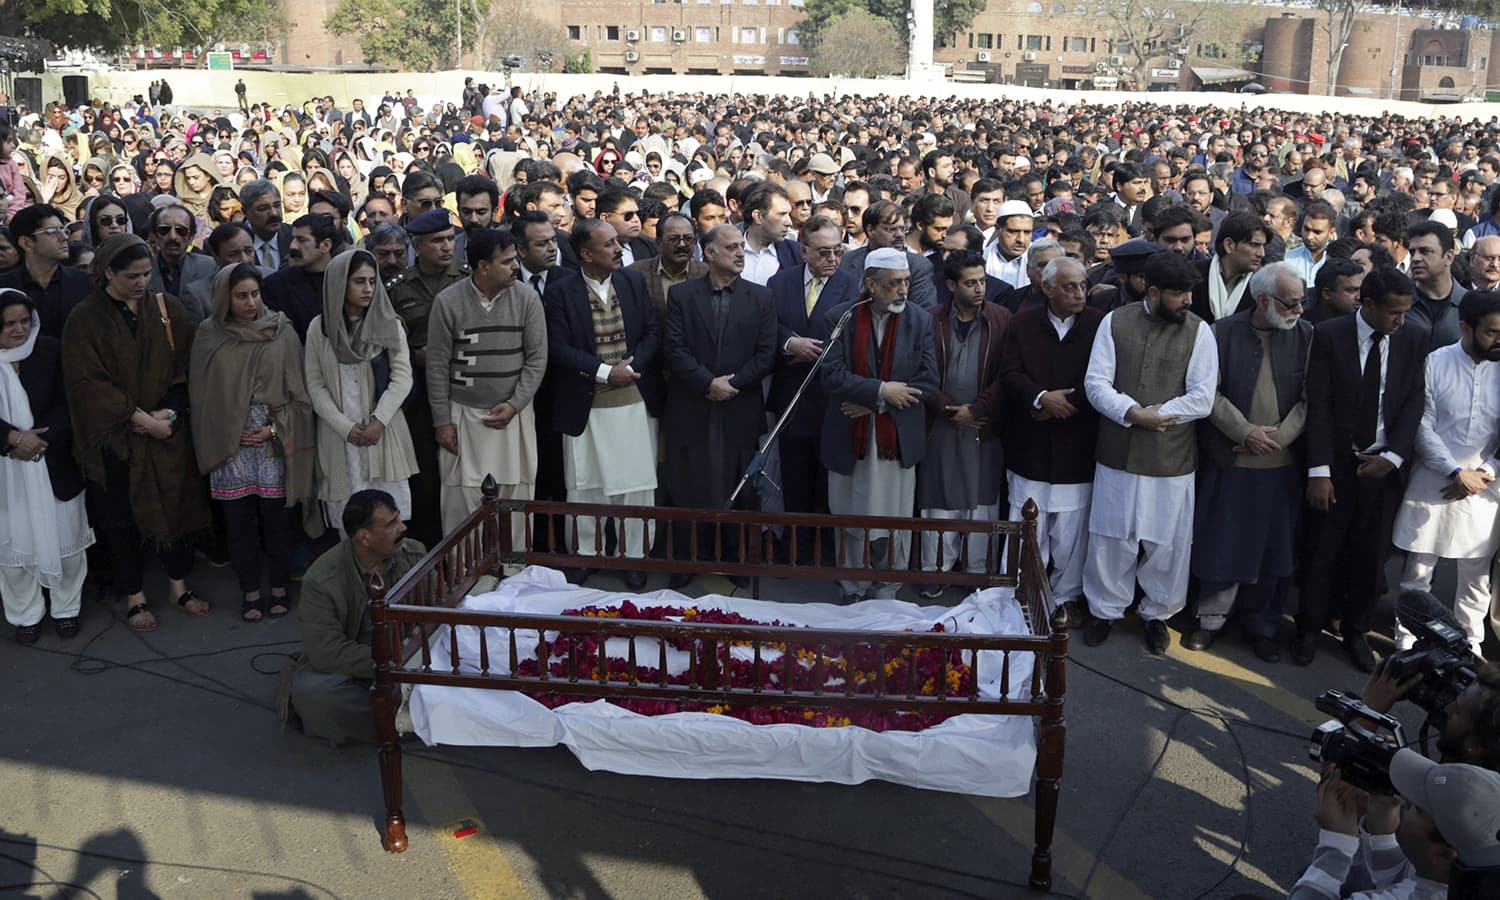 People pray during the funeral of Asma Jahangir  AP